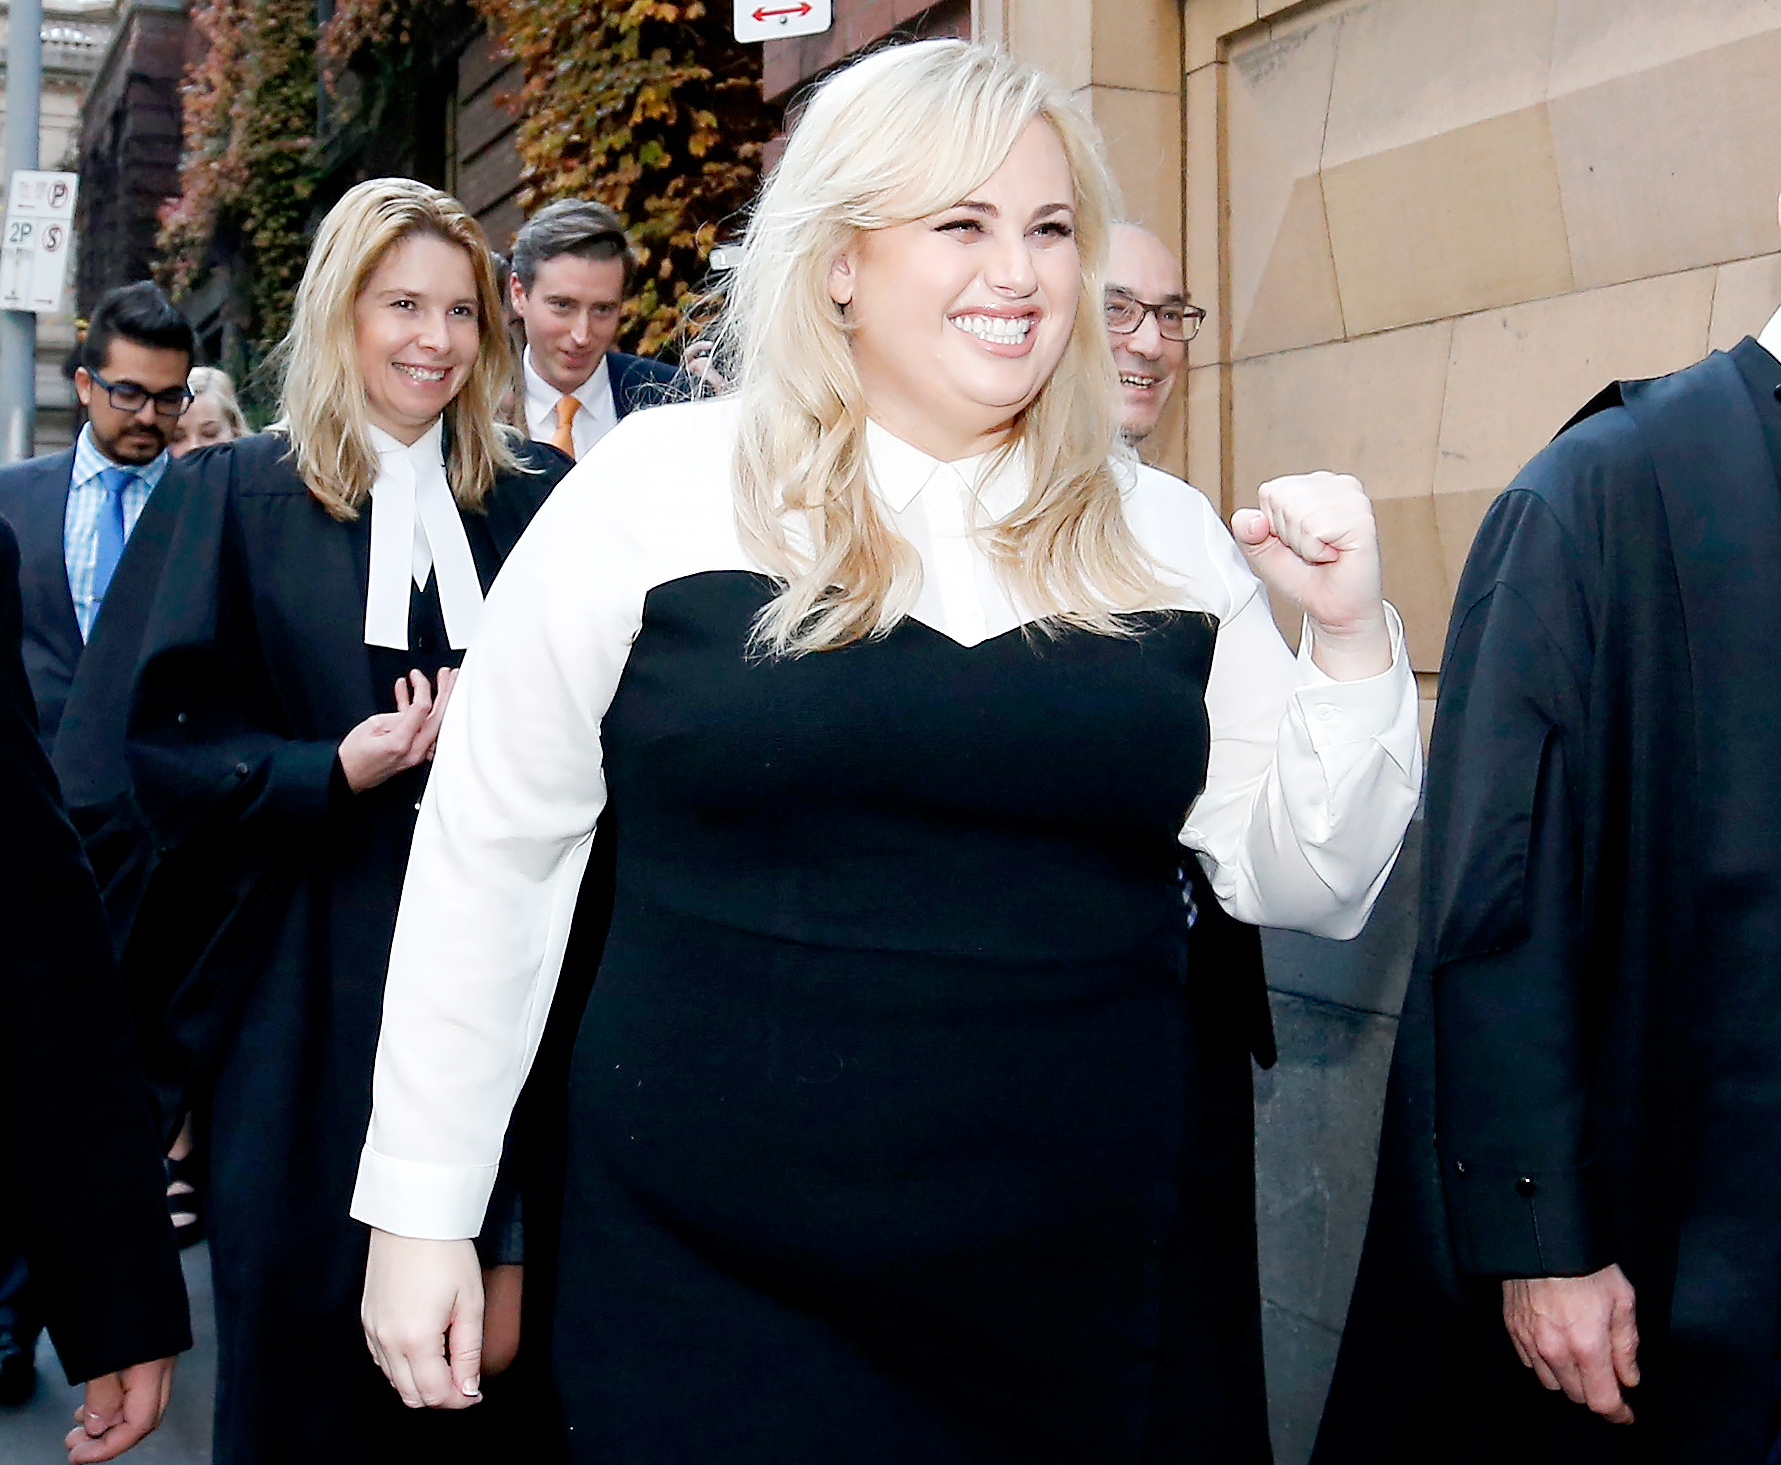 Rebel Wilson pumps her fist at the media on June 15, 2017 in Melbourne, Australia.